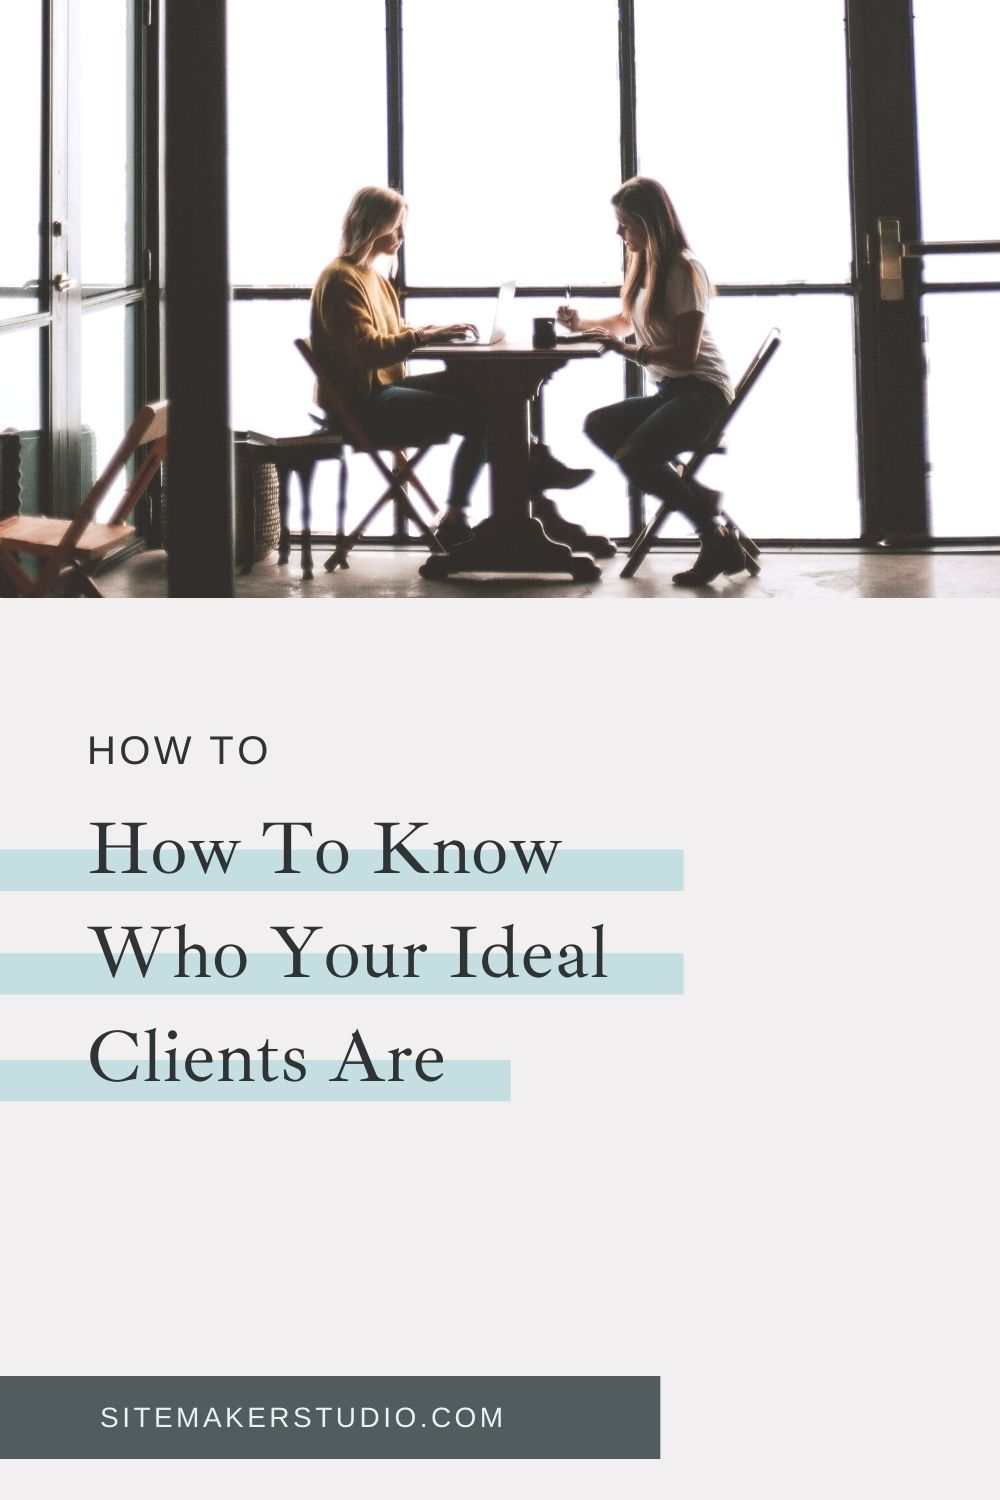 how to identify who your target audience and ideal clients are|learn how to target your ideal client free training workshop opt in|How do you know who your ideal clients are and how to figure out your target audience for your business